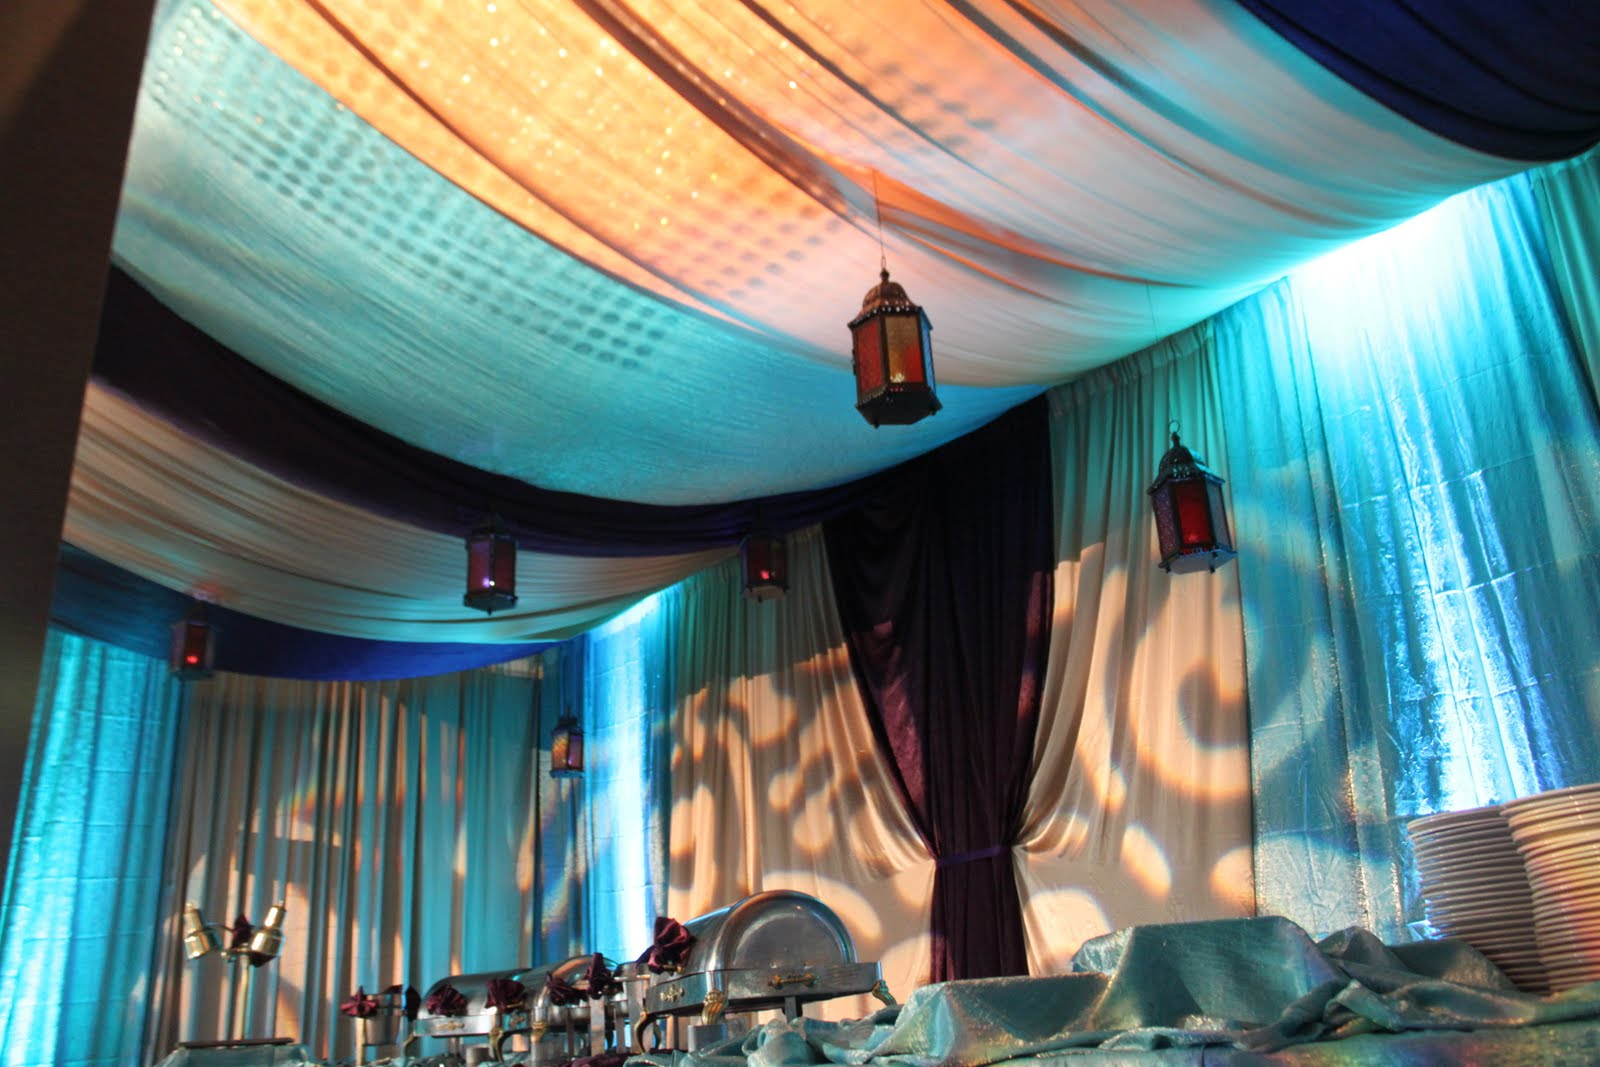 using and renting rsvp ceiling ceilings rental portable pipe waco extracoeventbackdrop drapes draping drape